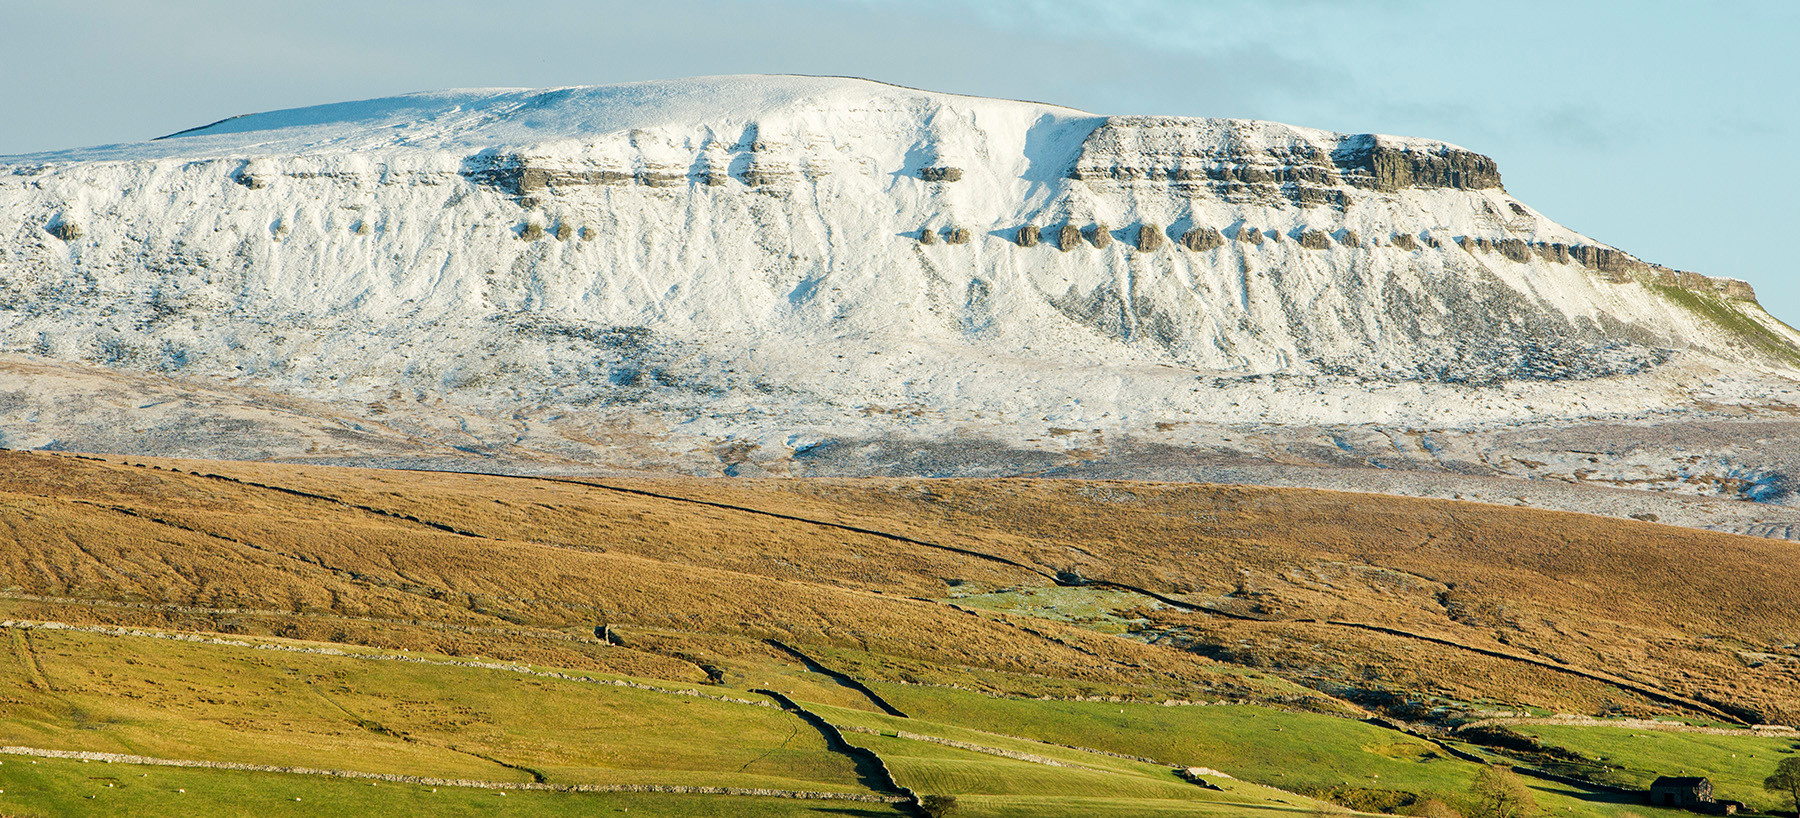 Snow covered Pen-y-Ghent